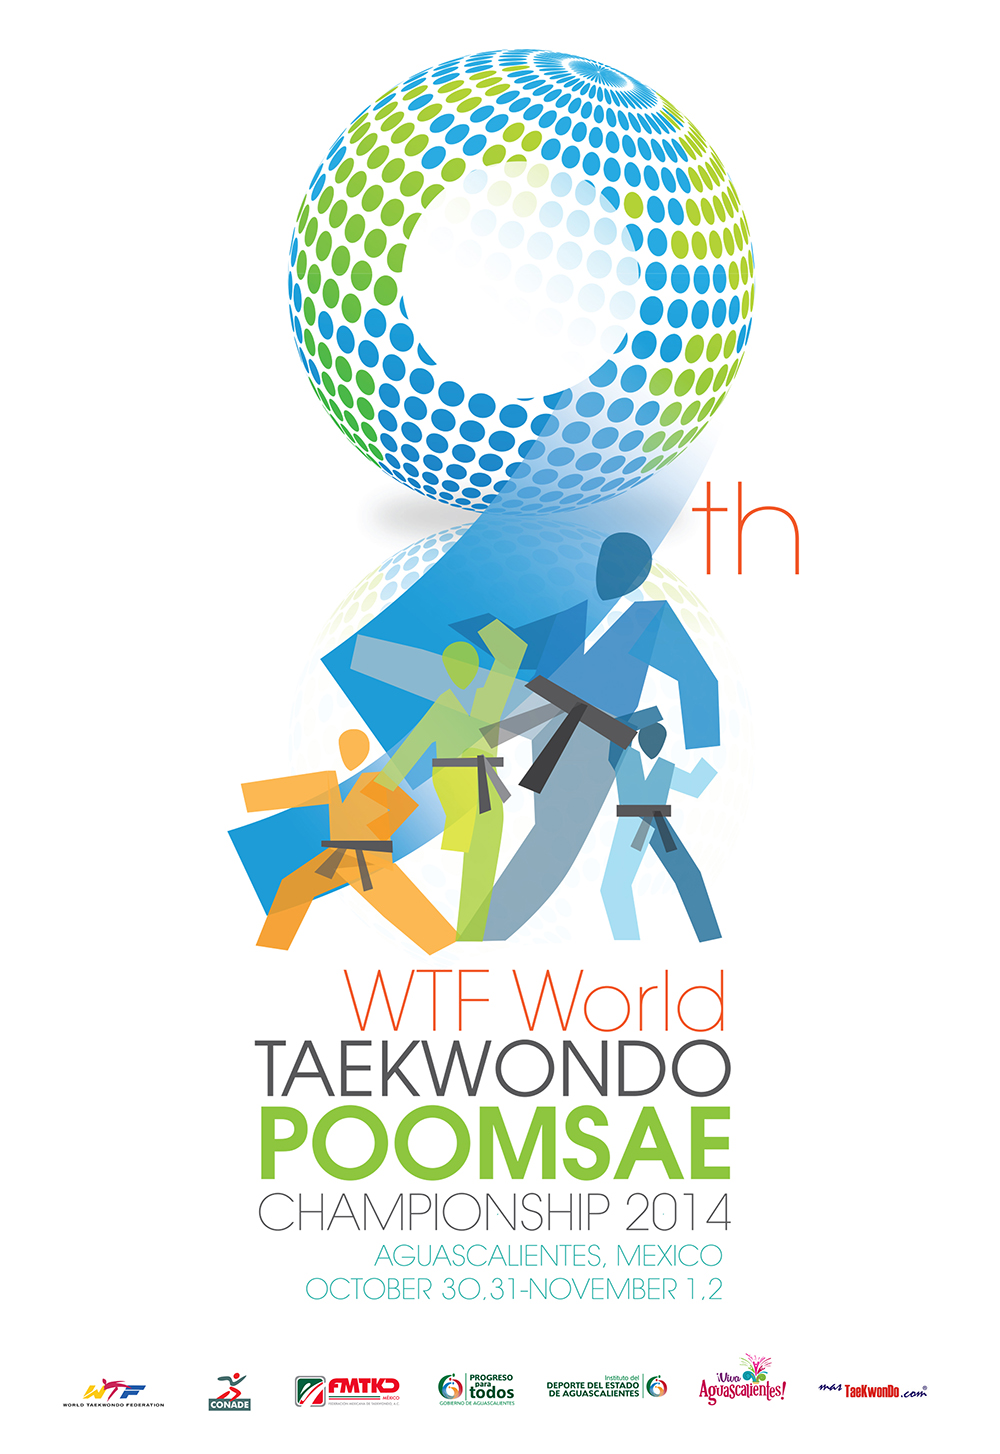 9th WTF World Taekwondo Poomsae Championships